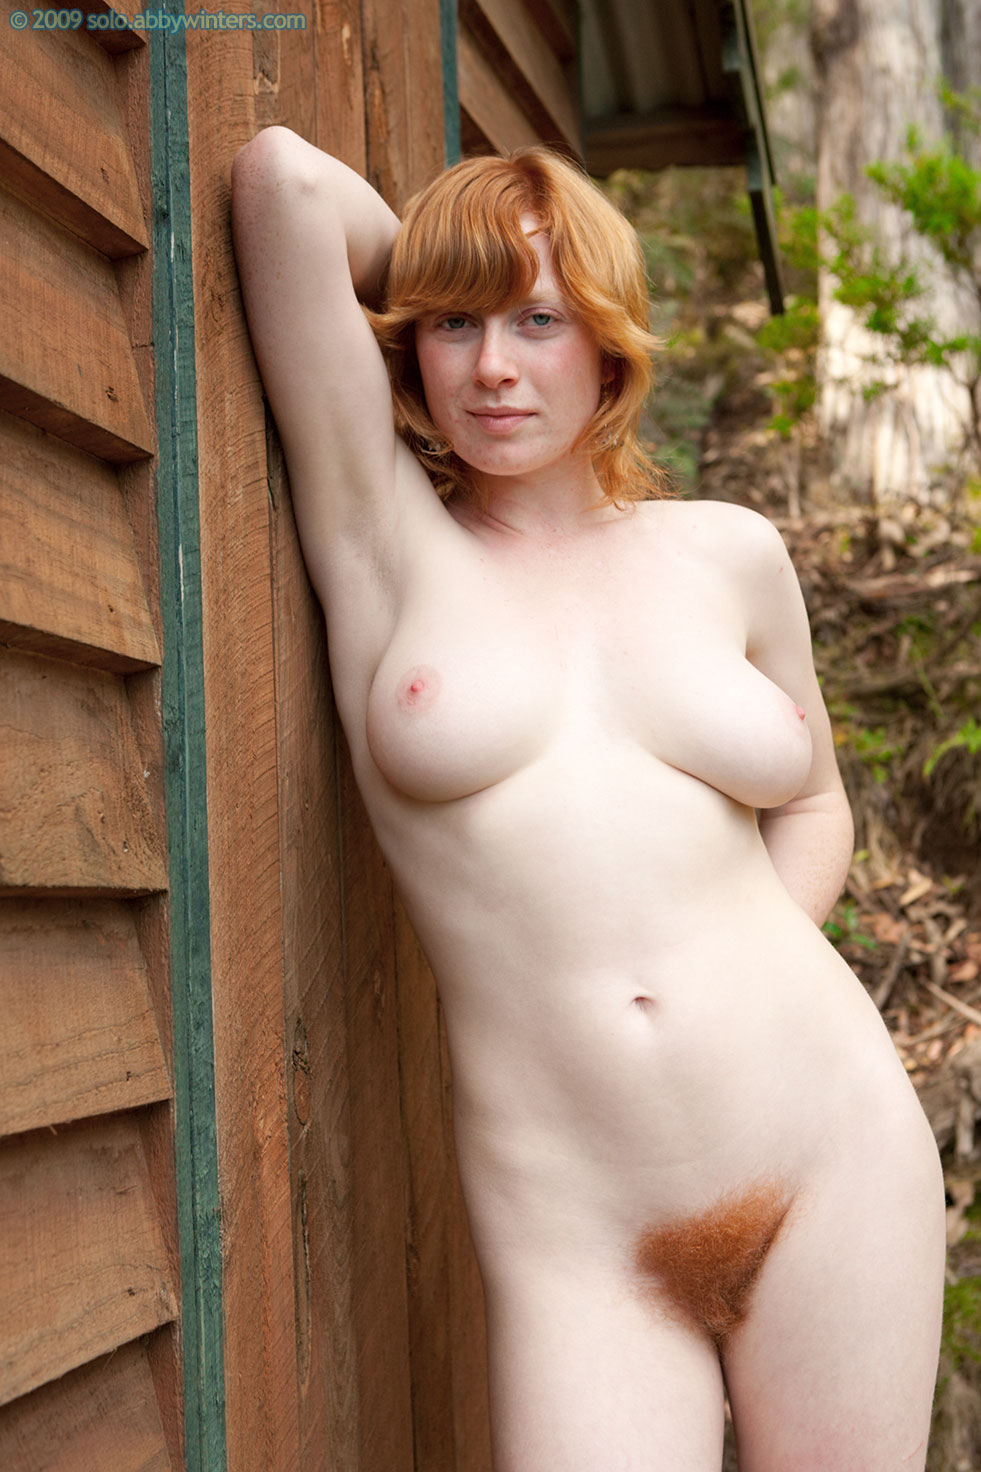 Hot naked red headed girls consider